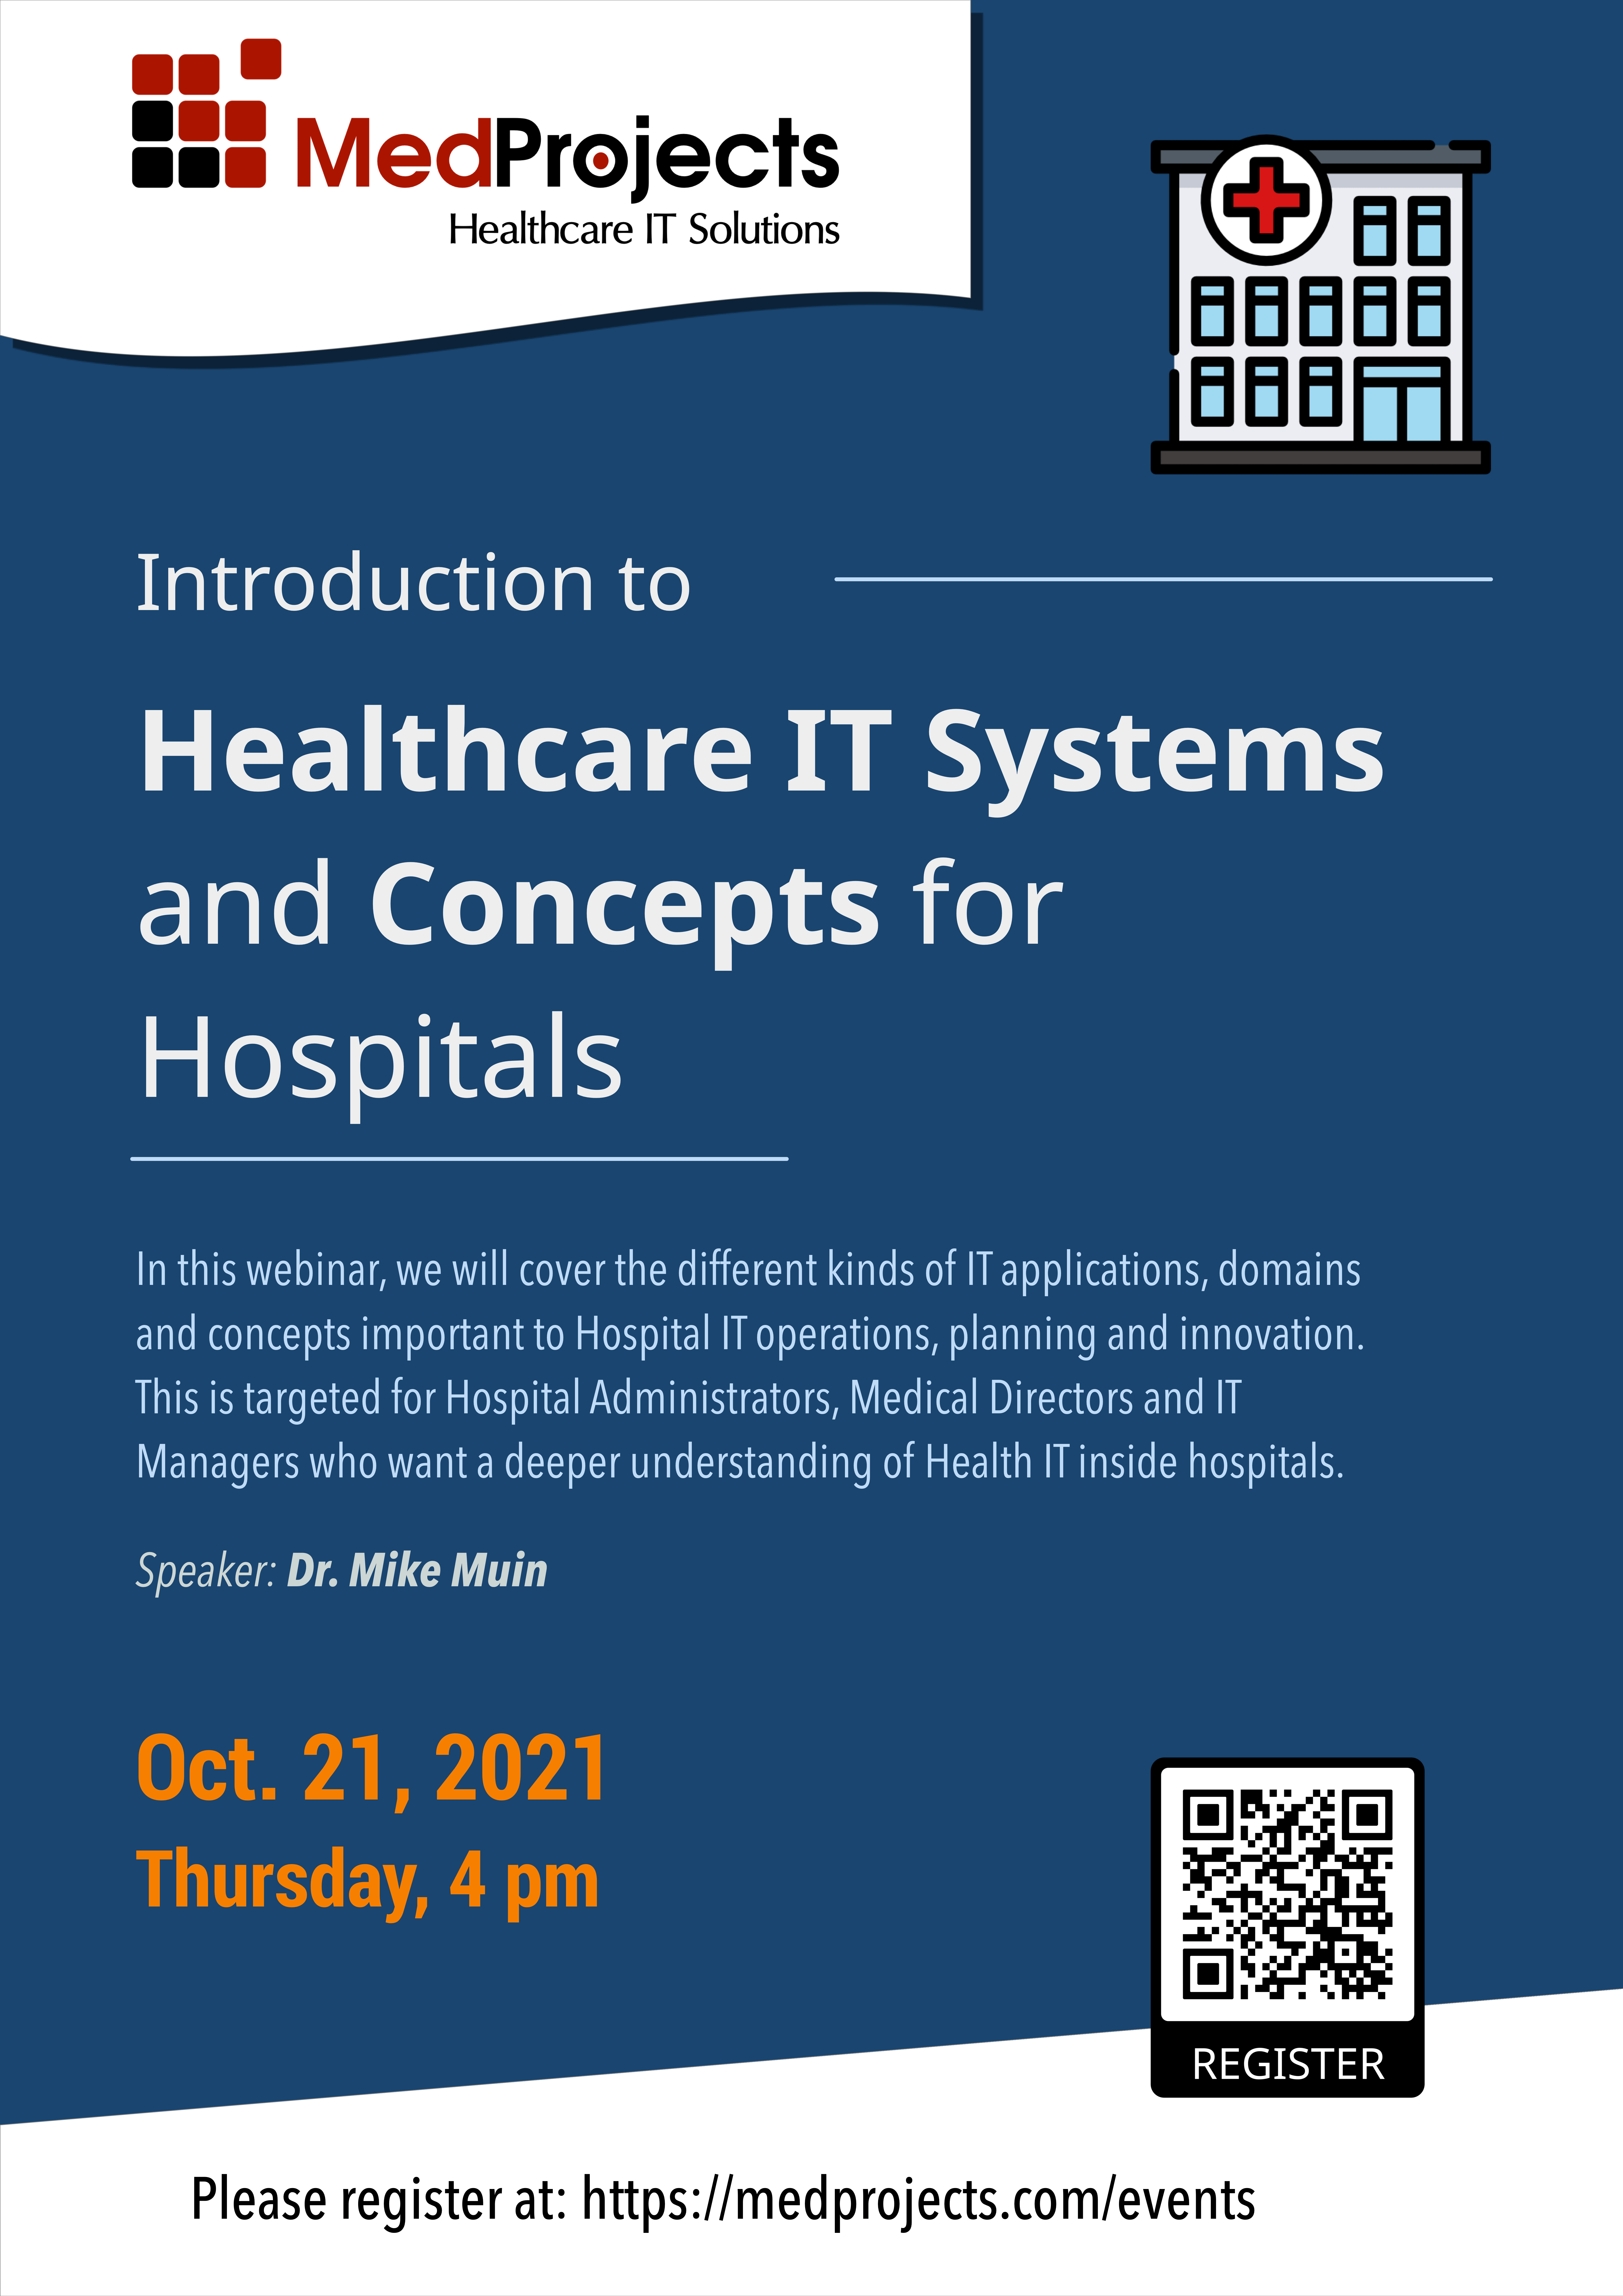 Introduction to Healthcare IT Systems and Concepts for Hospitals